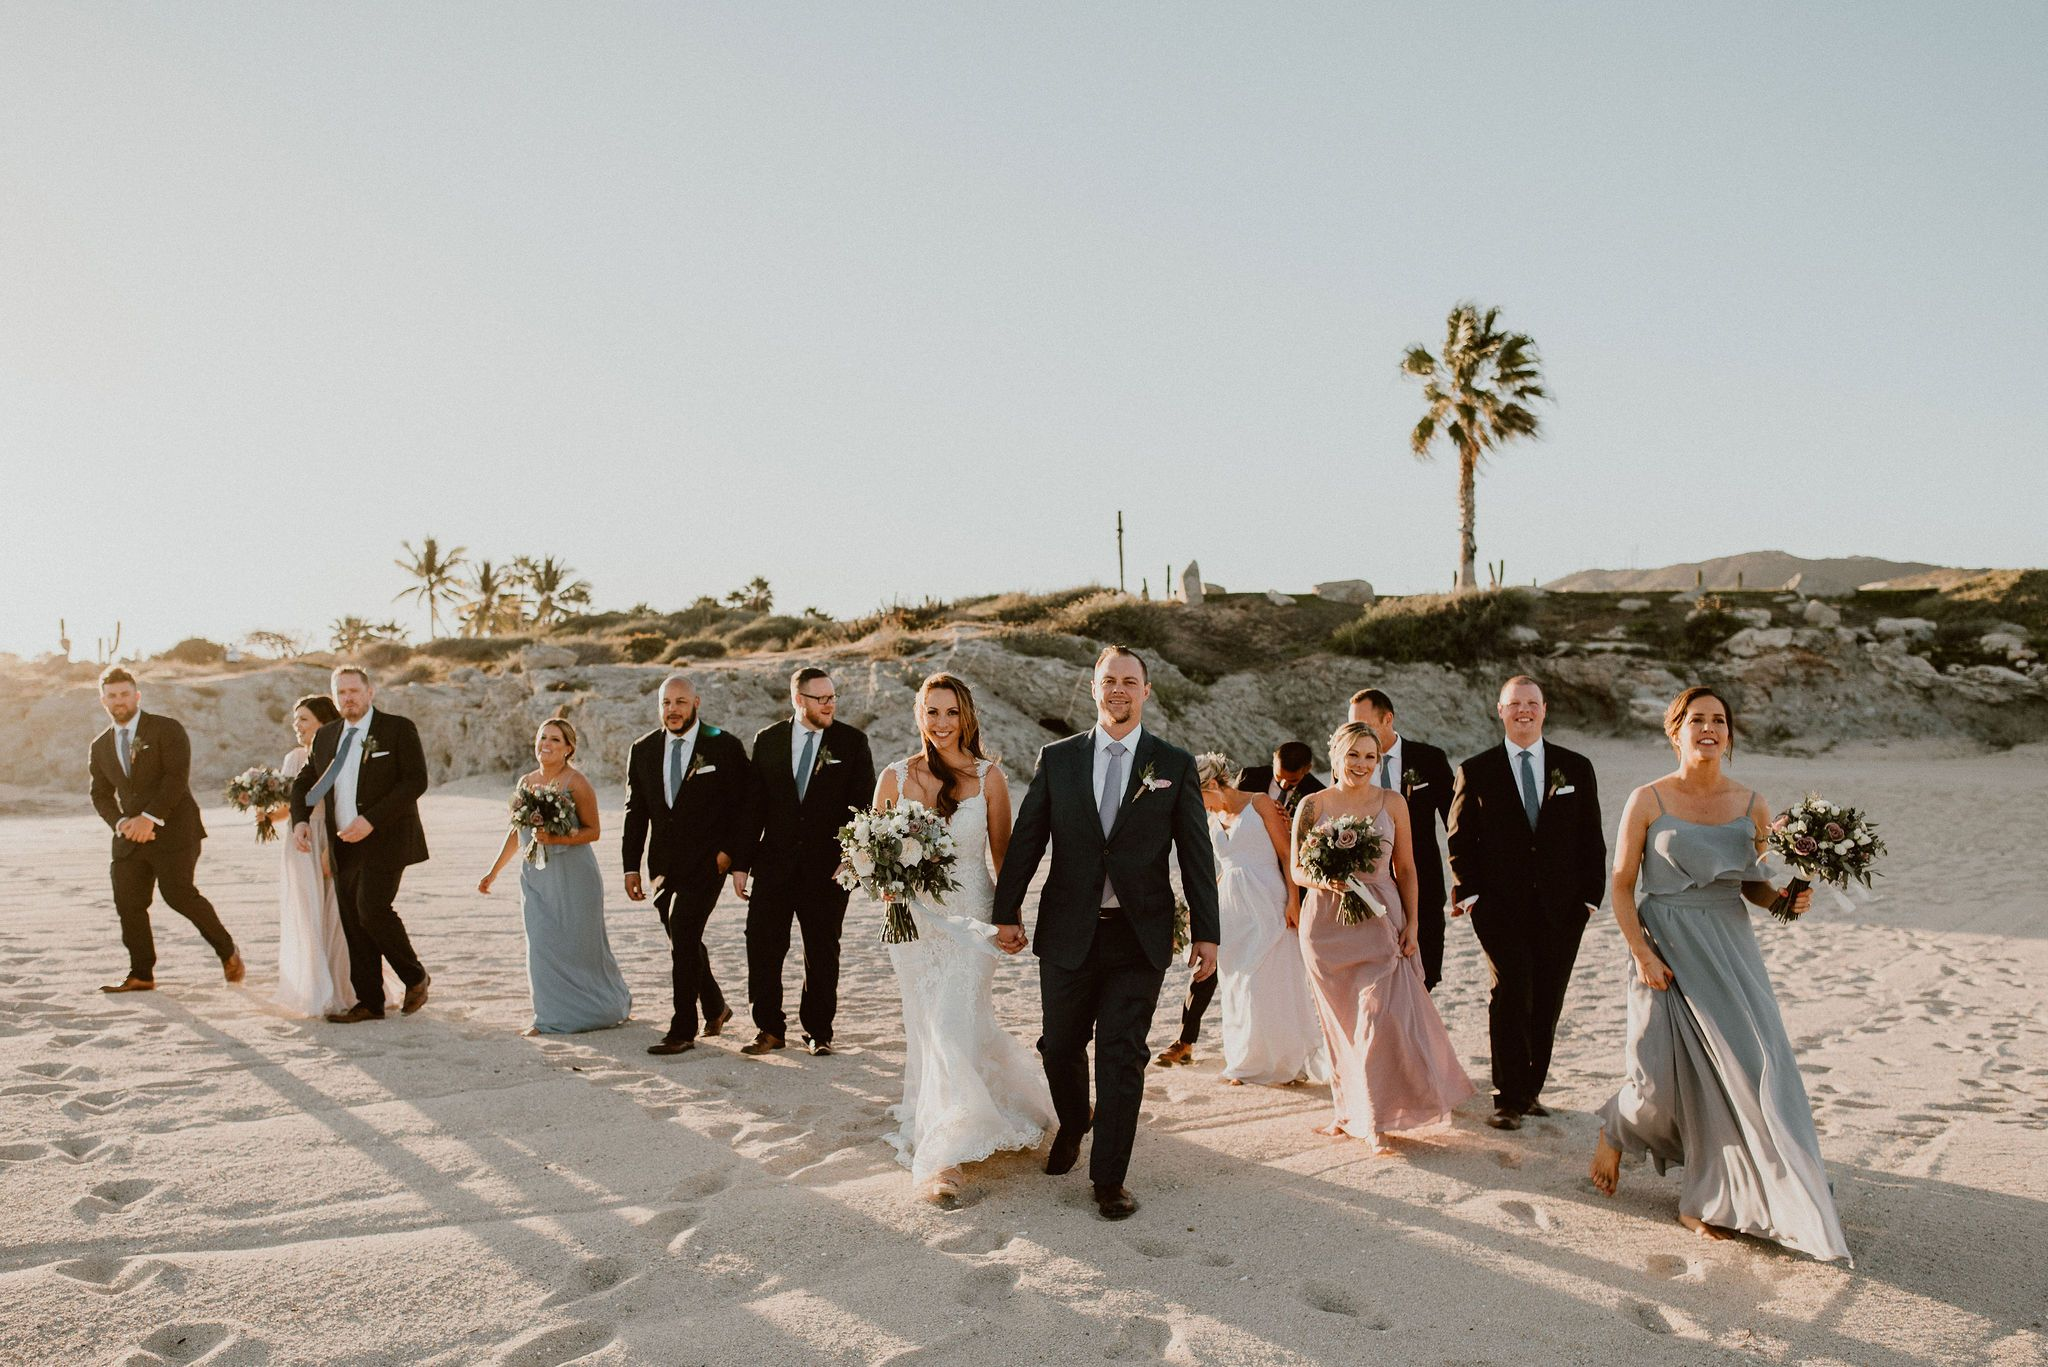 Full Bridal Party at Destination Wedding in Los Cabos Mexico. Wedding Planning by Cabo Wedding Services. Wedding Photography by Ana and Jerome in Los Cabos, Mexico